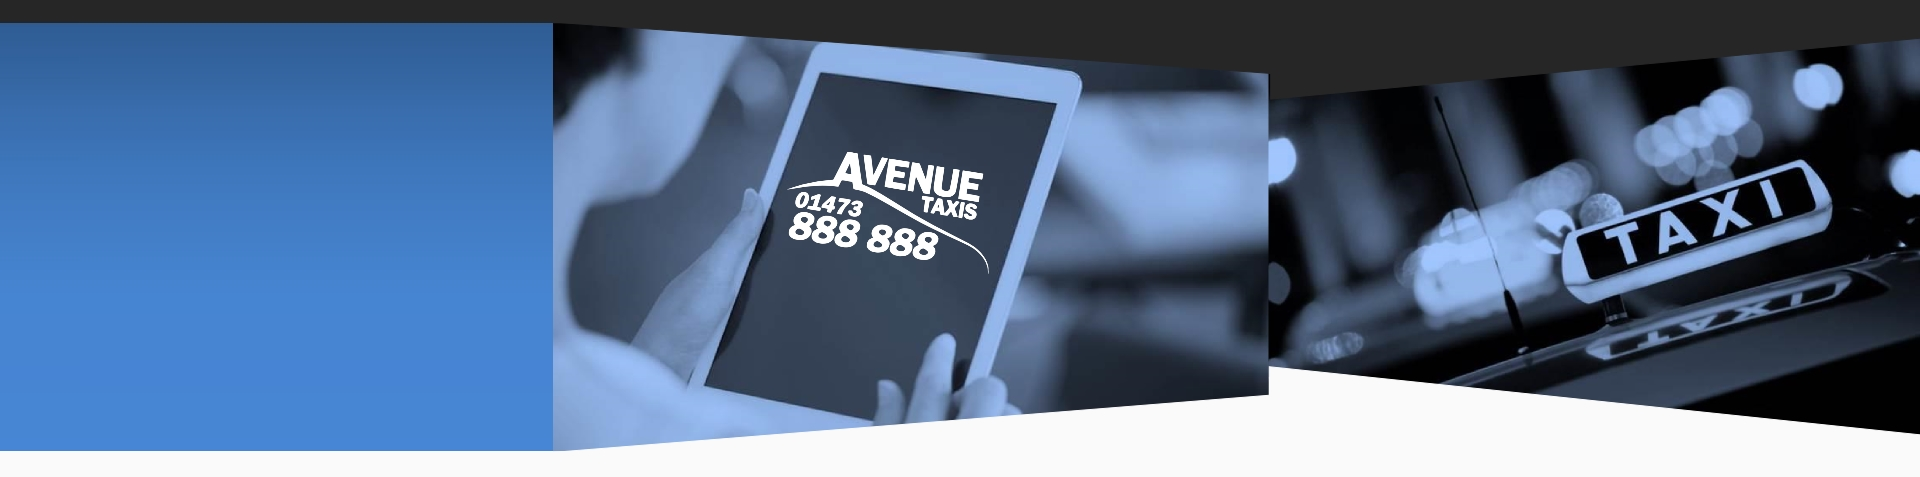 Book a Taxi online with Avenue Taxis, Ipswich